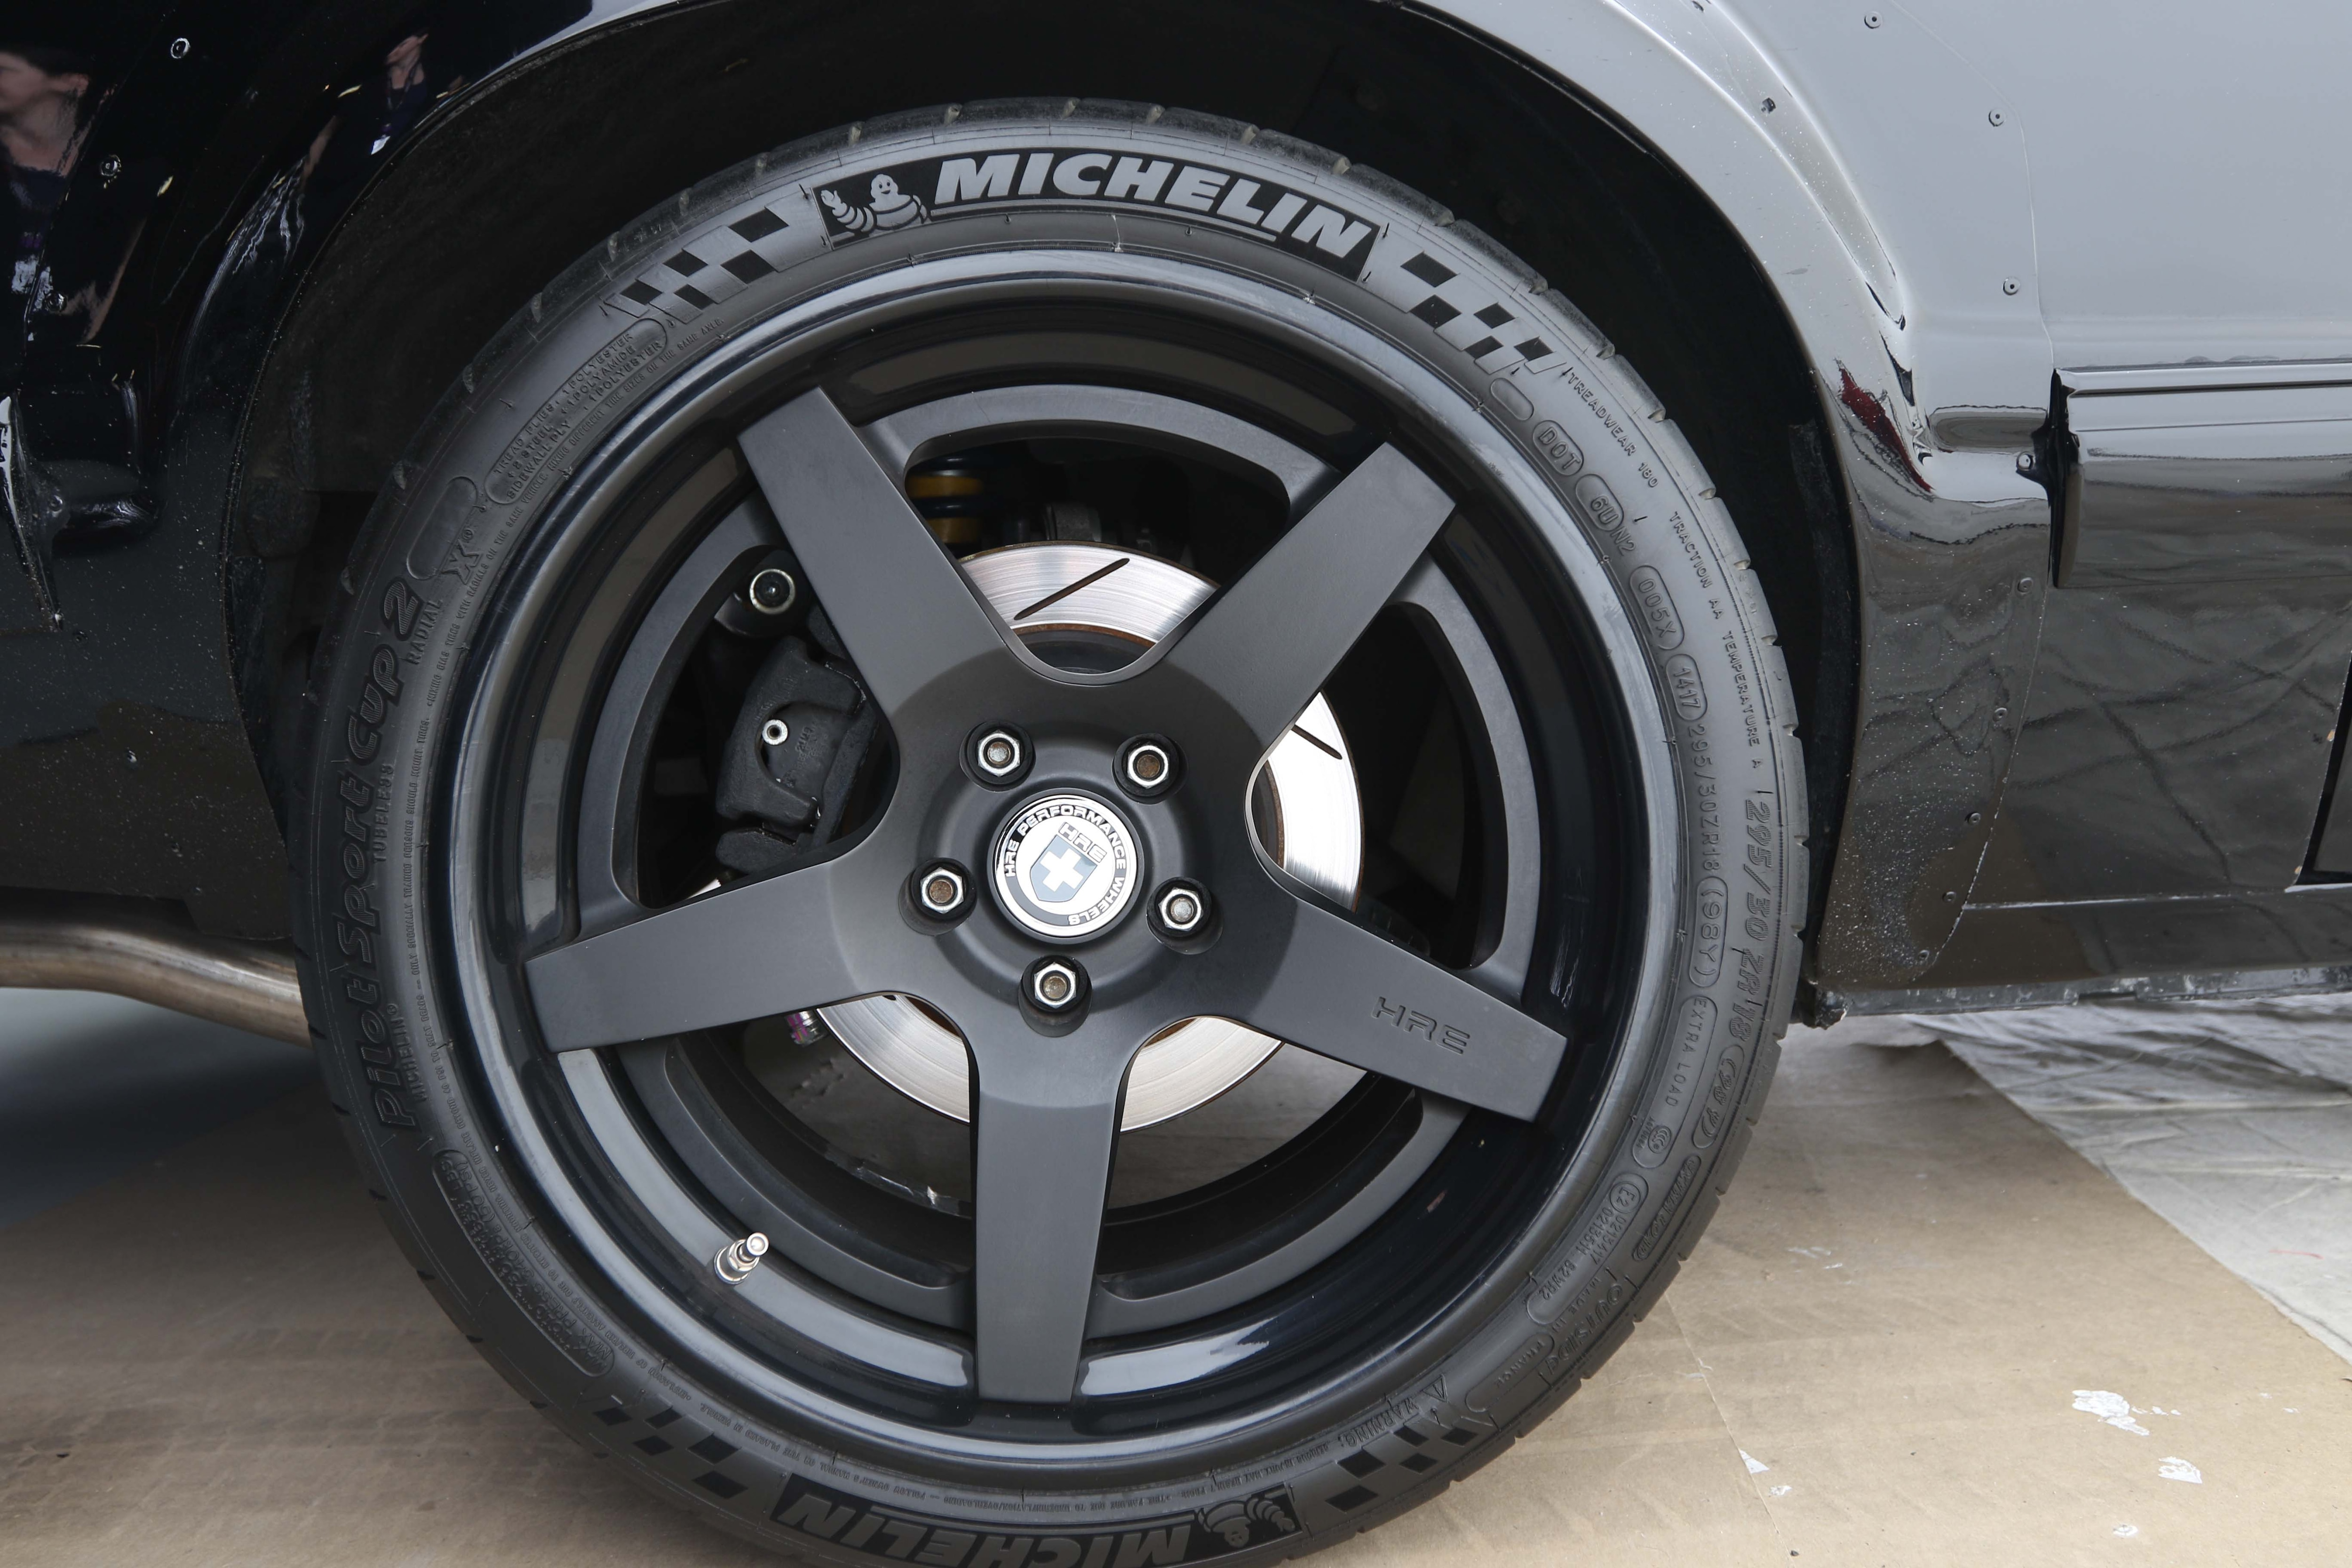 1988 Ford Mustang Wheel